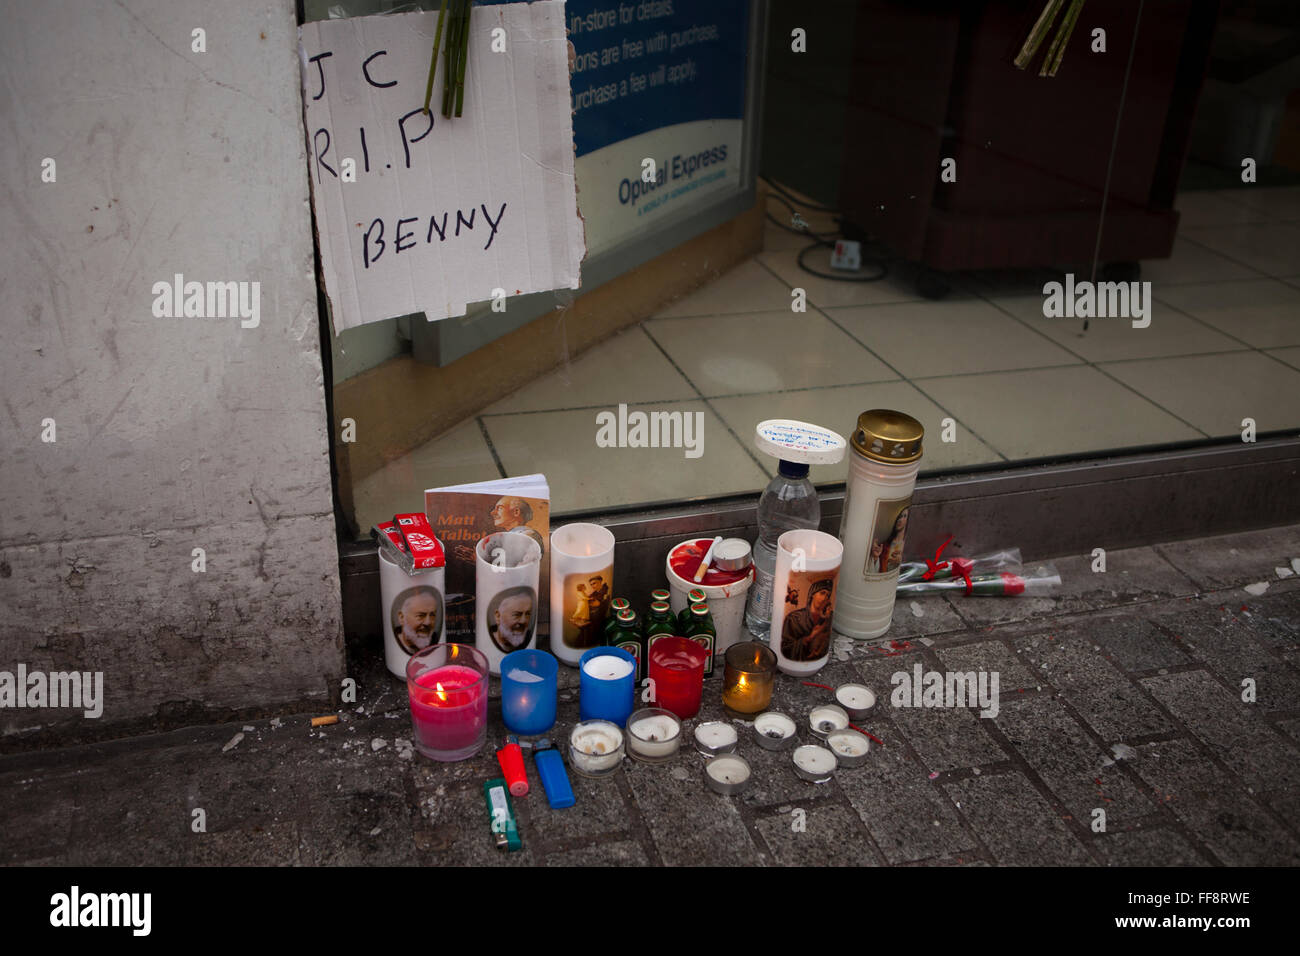 Donegall place, Belfast, 11th February 2016. The  spot where Homeless Belfast man 'Jimmy' died early on - Stock Image